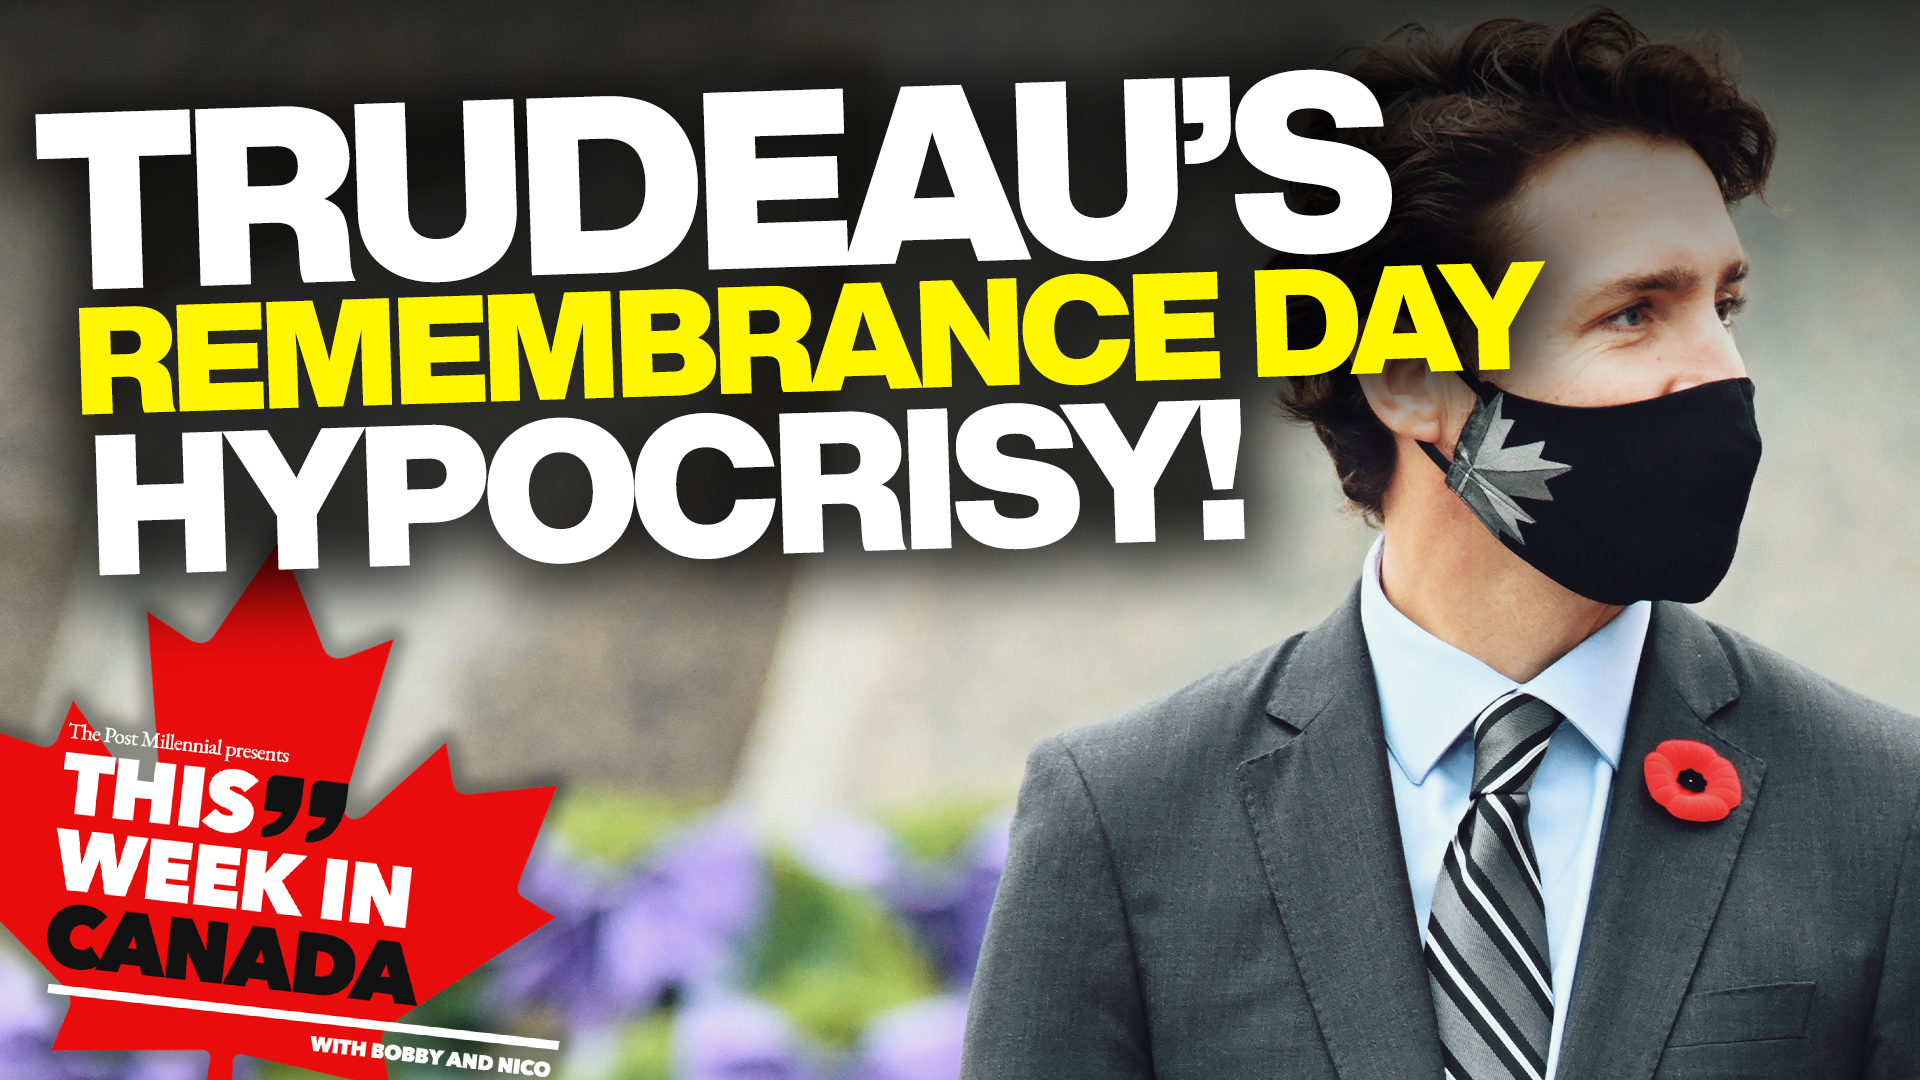 Trudeau's Remembrance Day hypocrisy! - This Week in Canada Episode 24